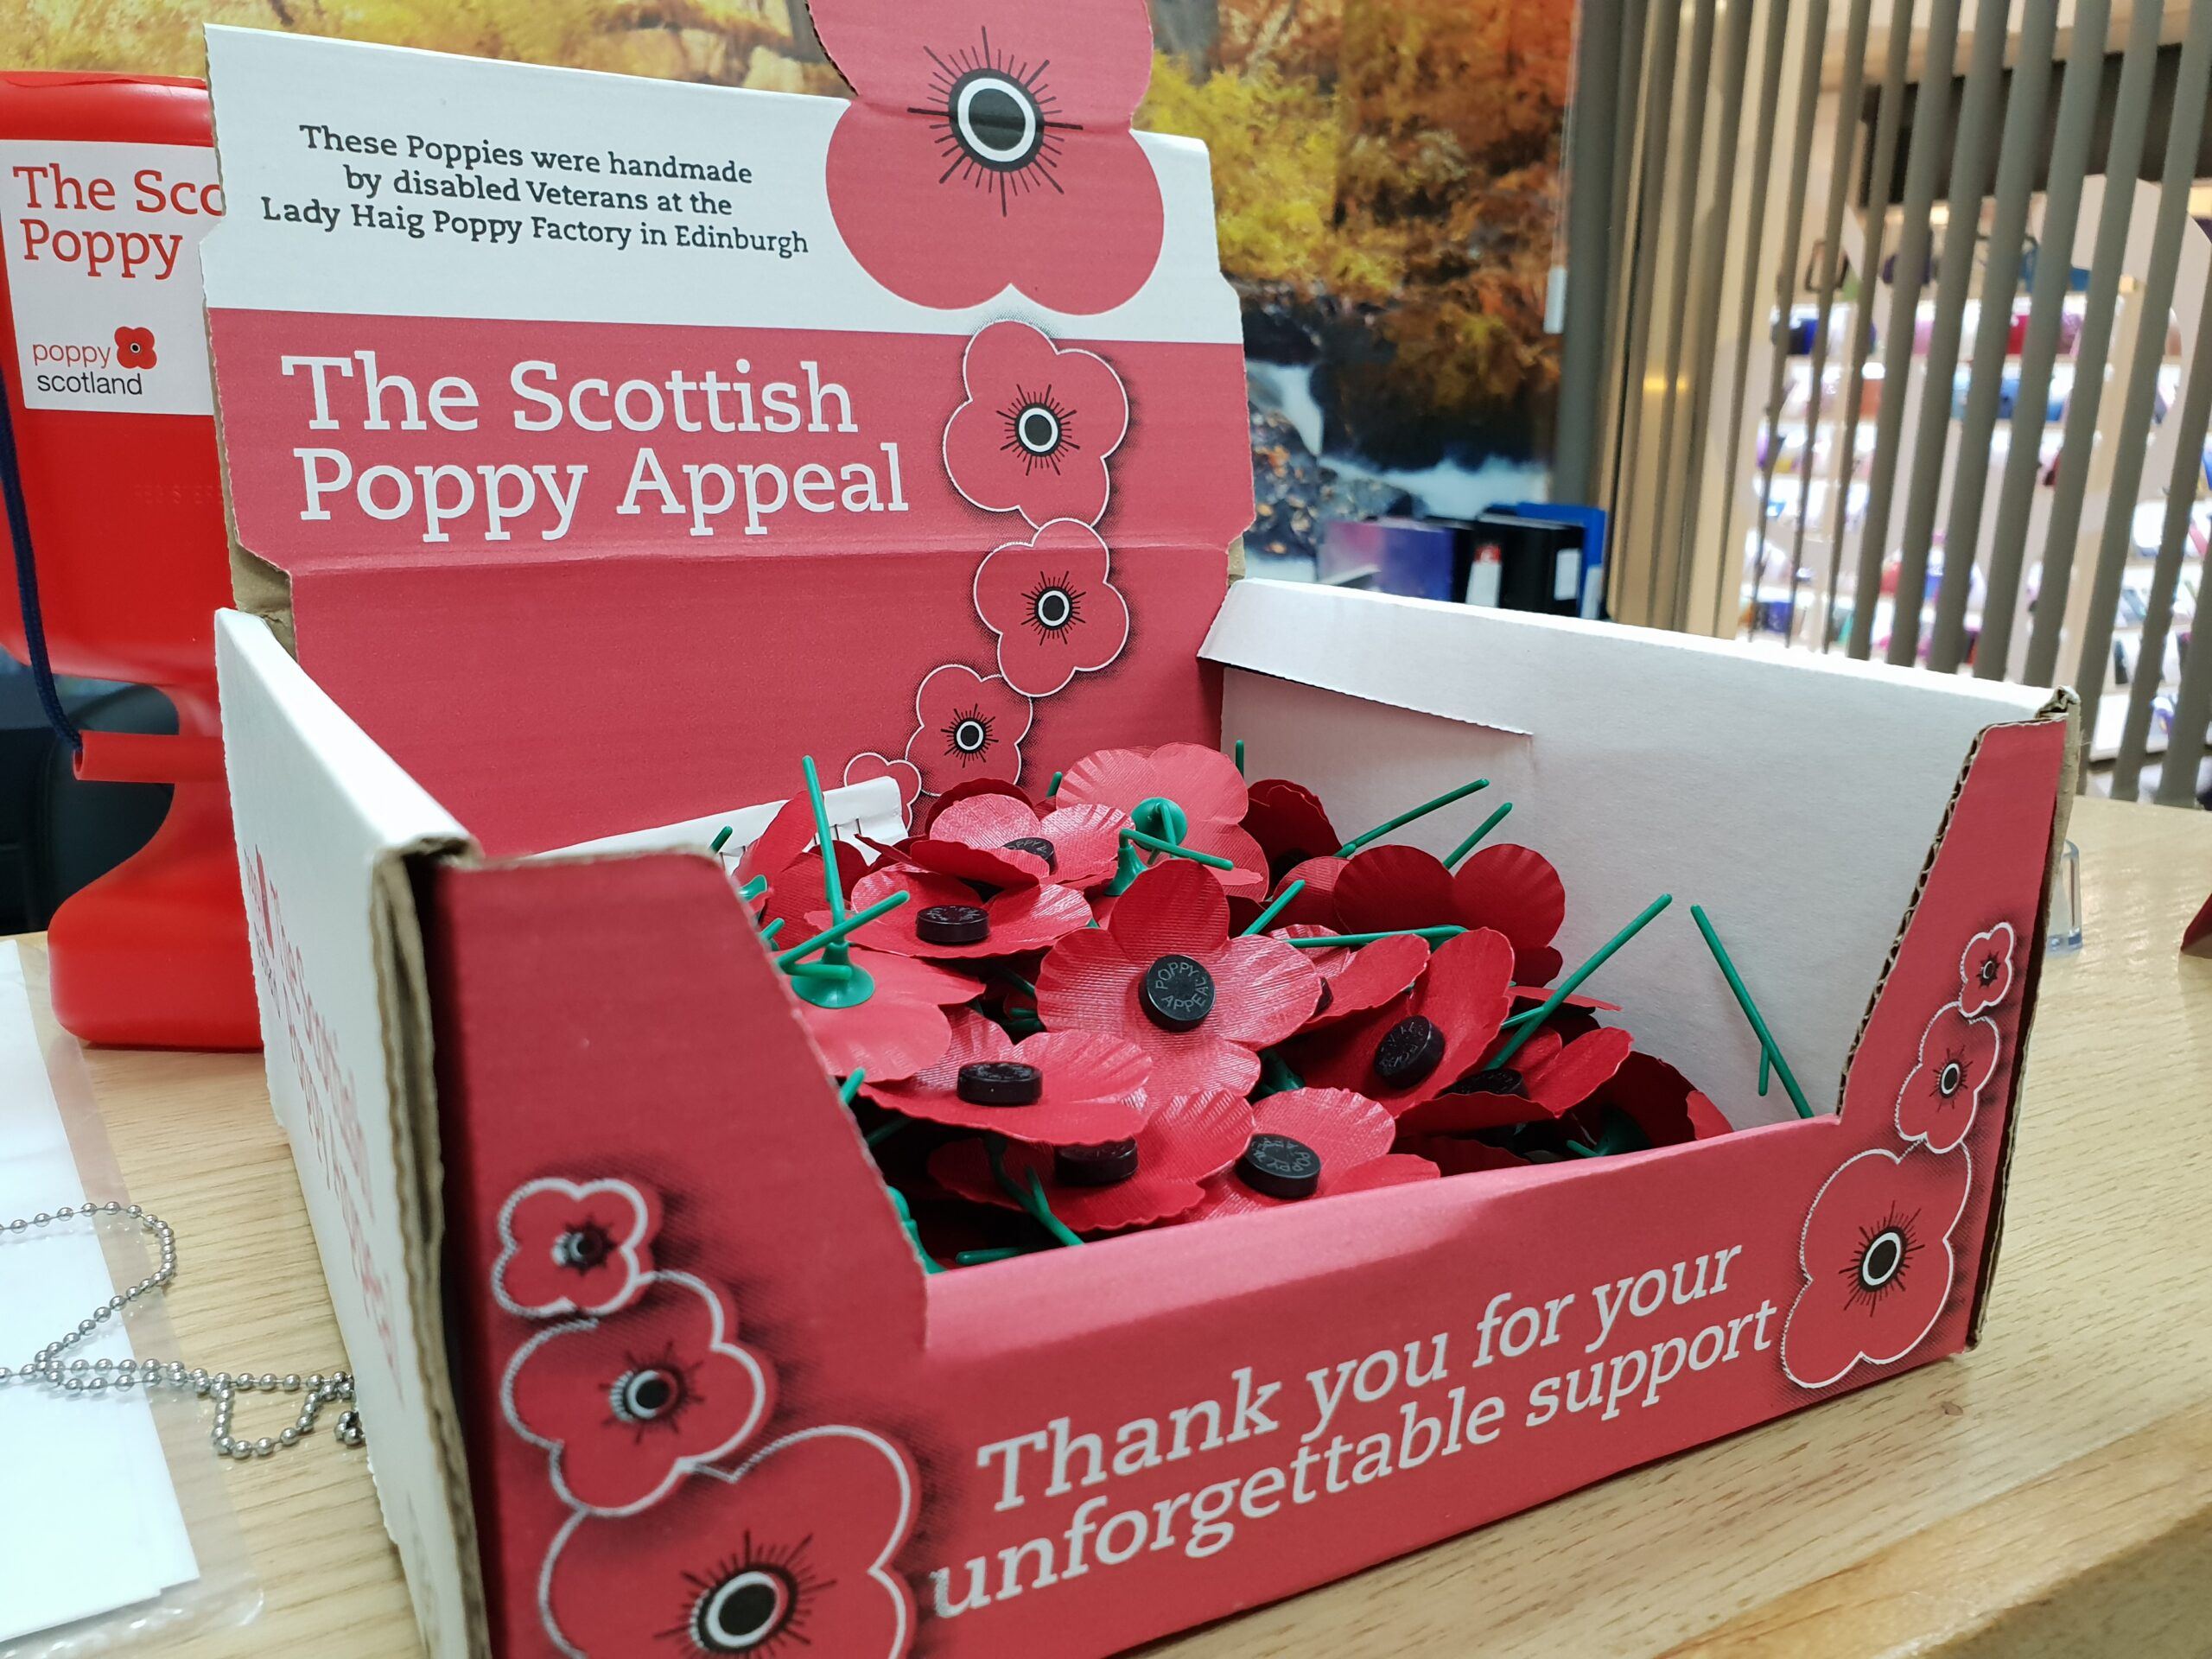 Supporting the scottish poppy appeal